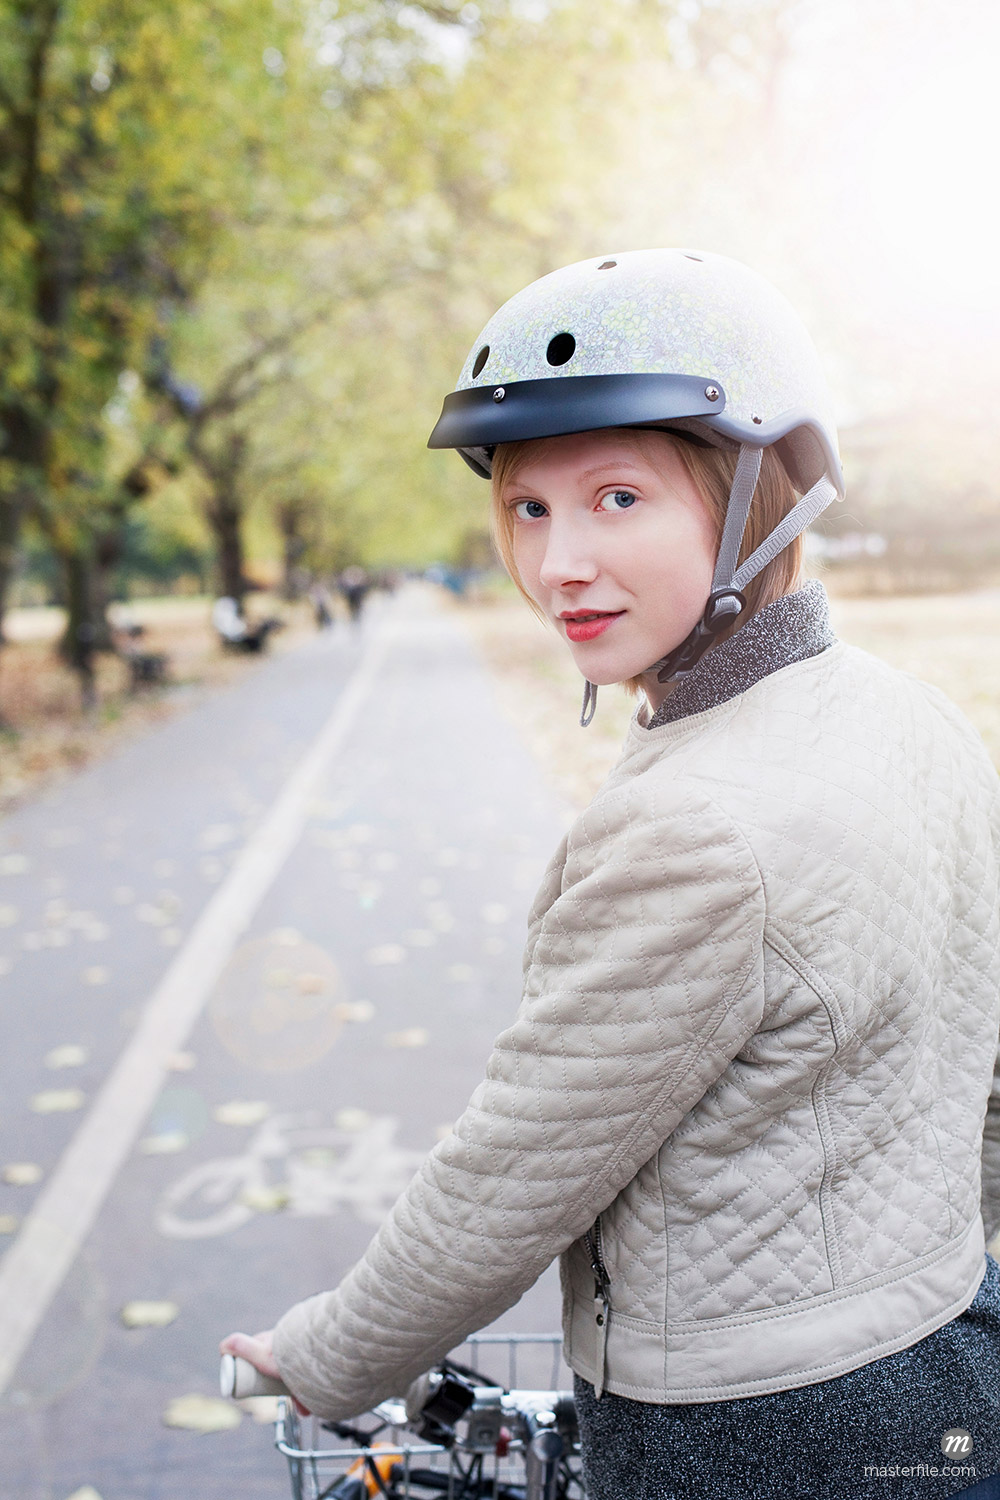 Woman on bicycle in urban park © Masterfile